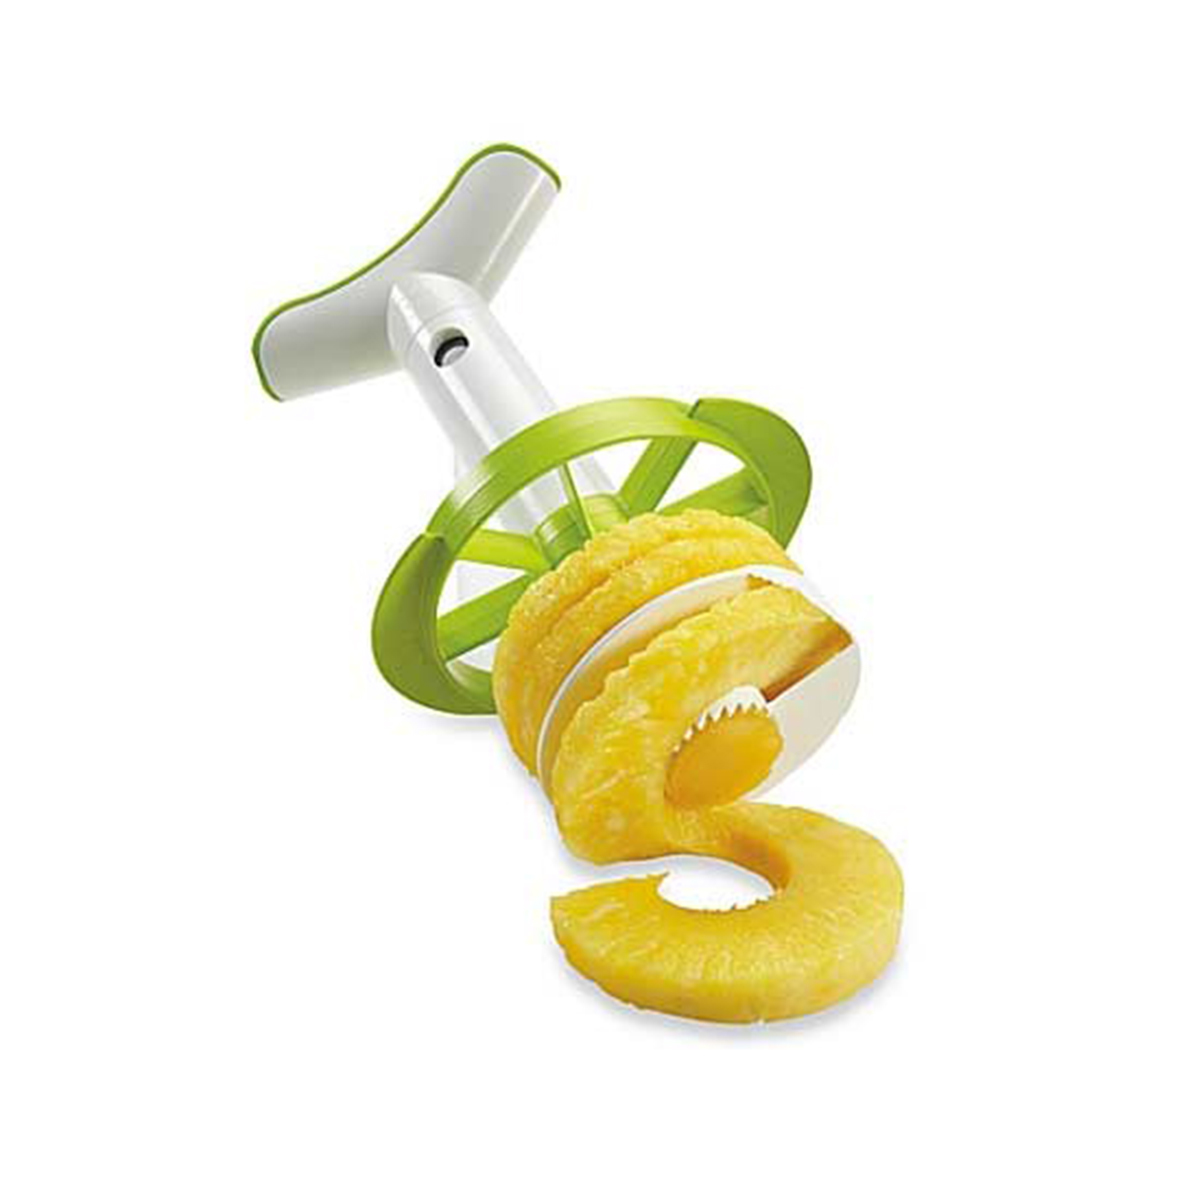 The four-in-one slicer pineapple slicer and wedger photo